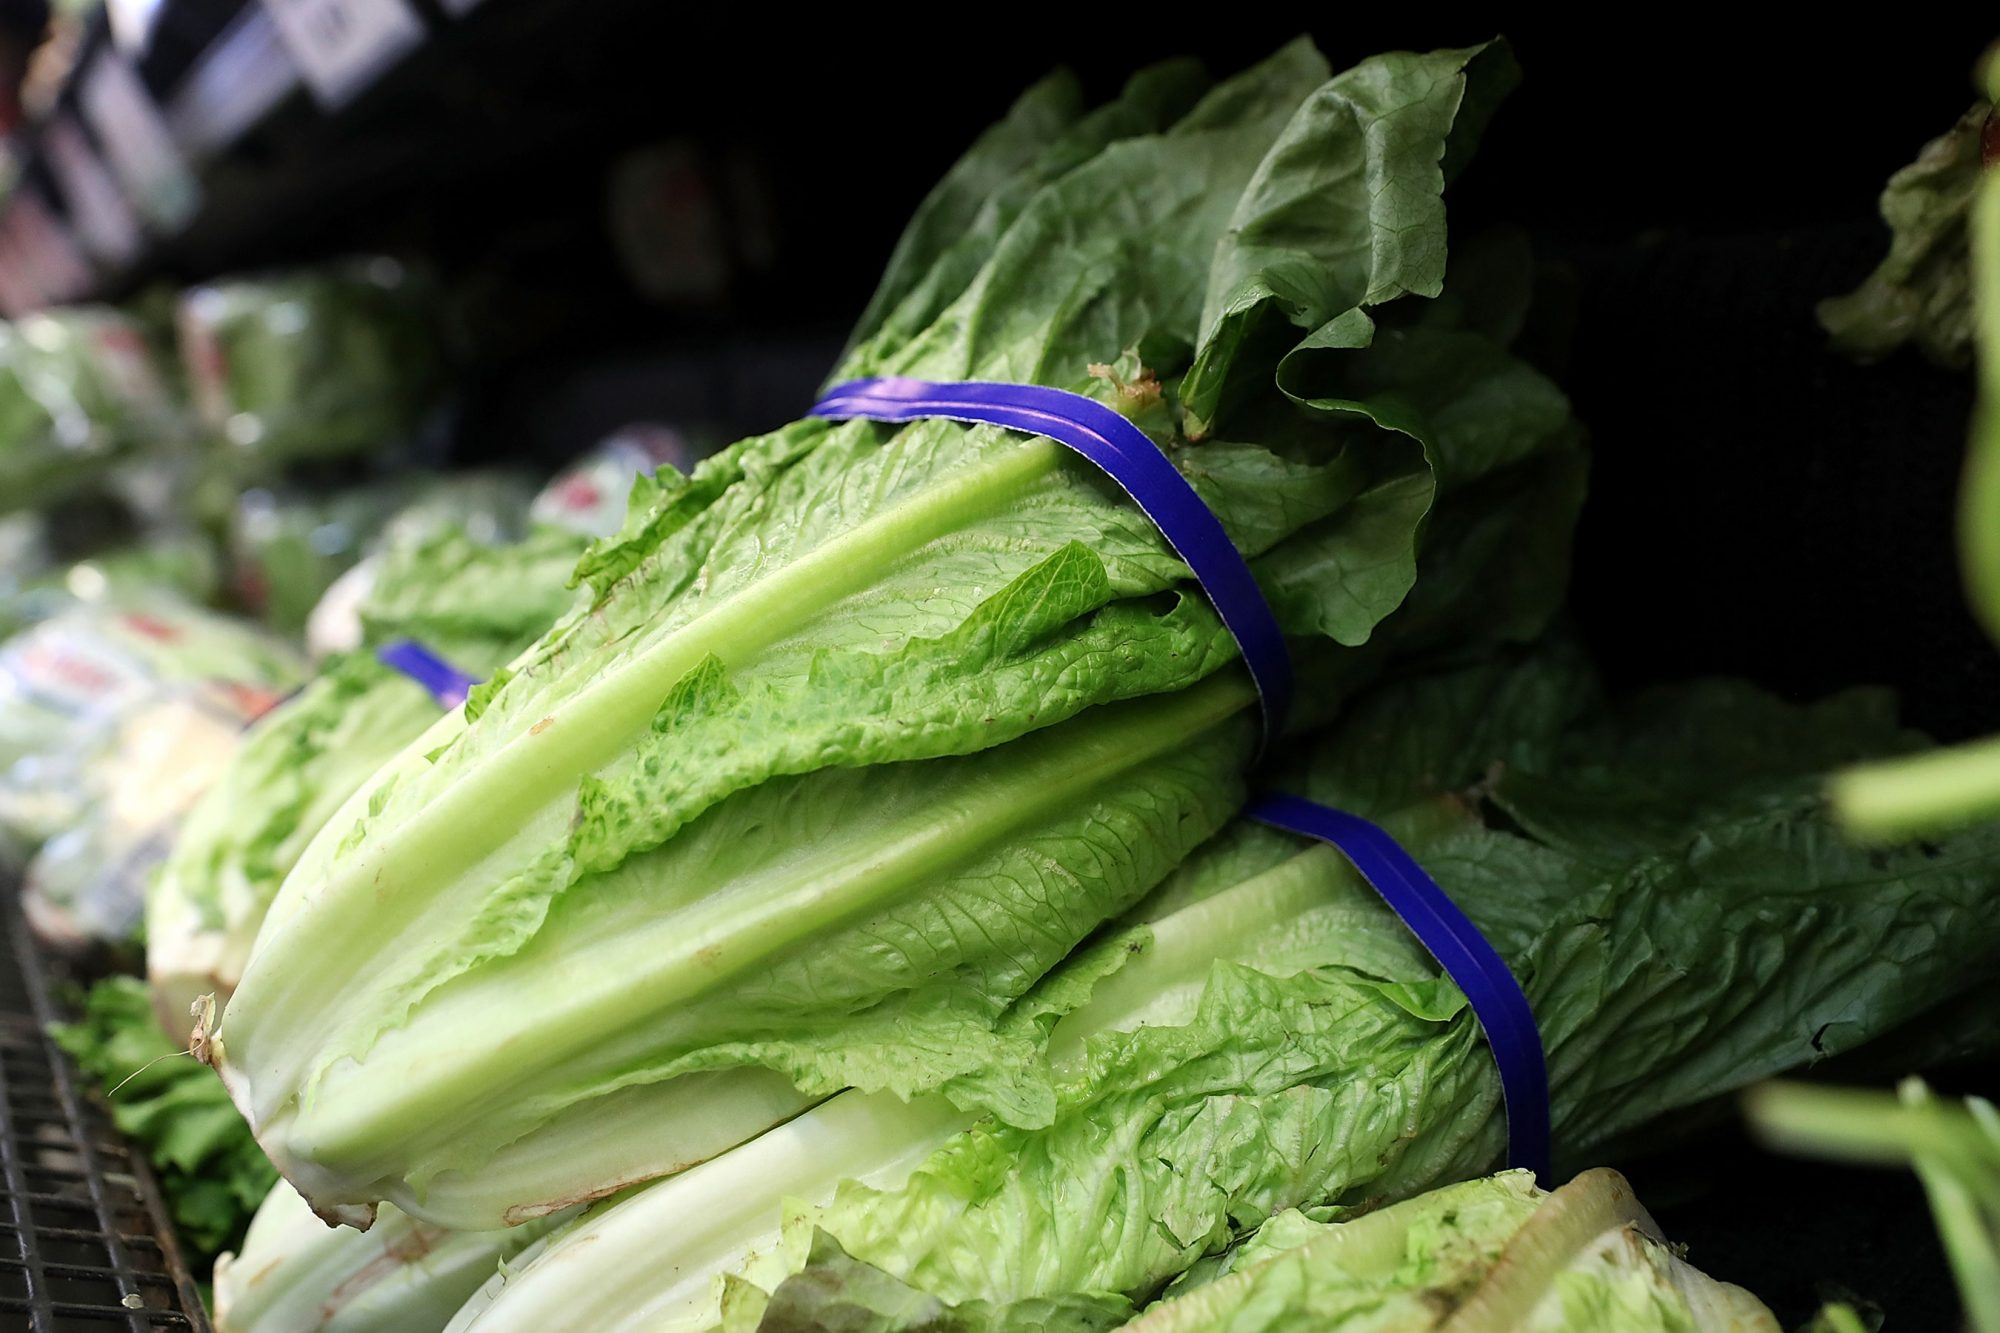 CDC Says to Throw Out All Romaine Lettuce Due to New E. coli Outbreak Ahead of Thanksgiving